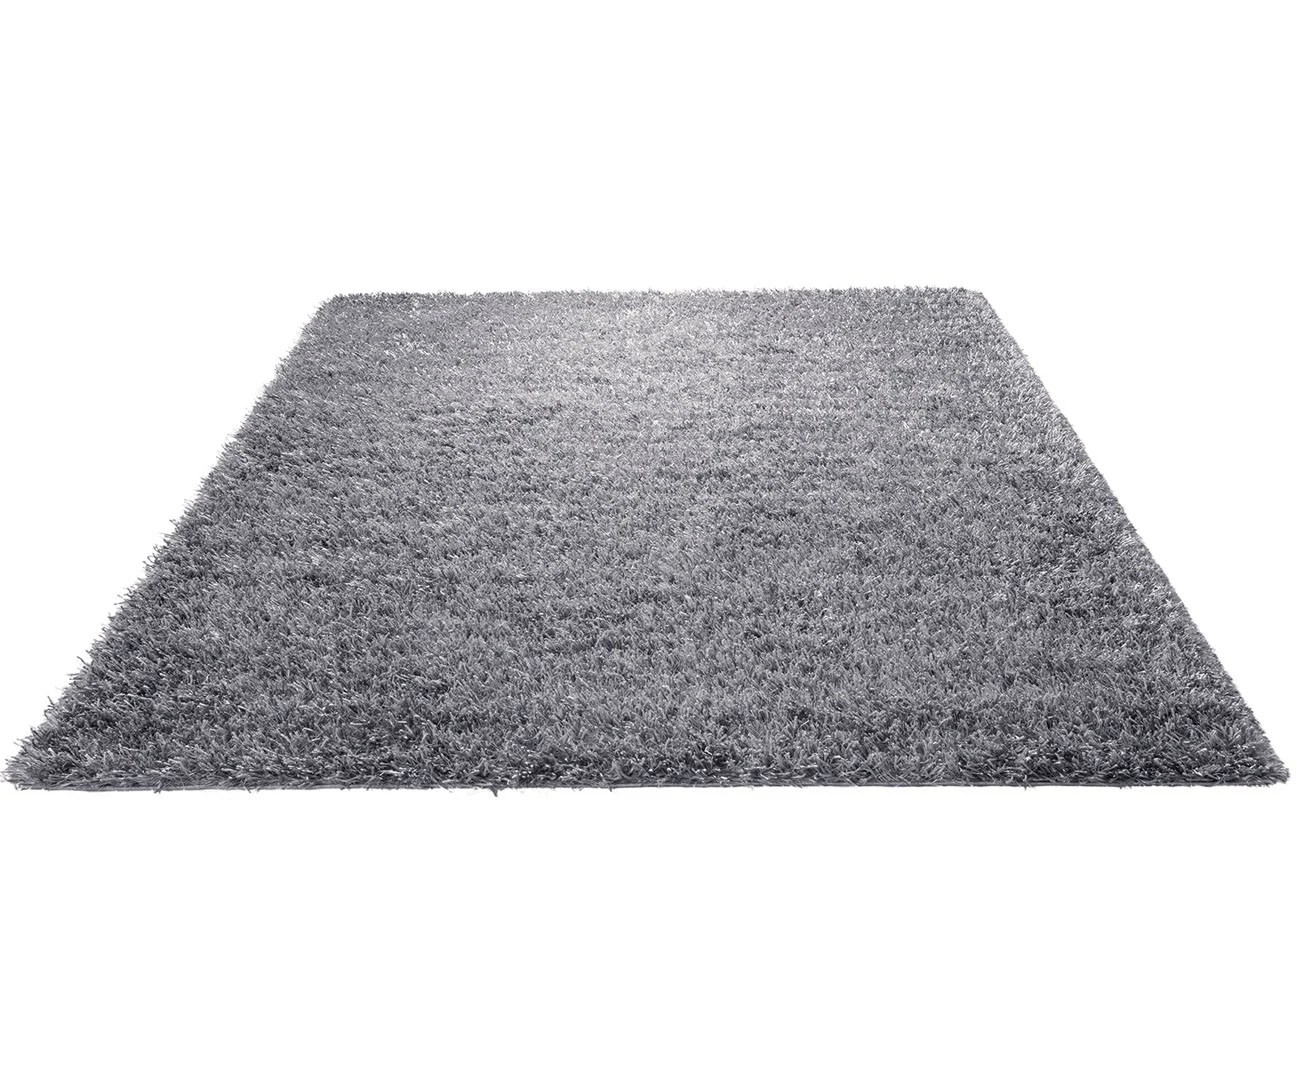 Tapis Salon Gris Et Rose Tapis De Salon Gris Ikea Tapis Salon Design Pas Cher With